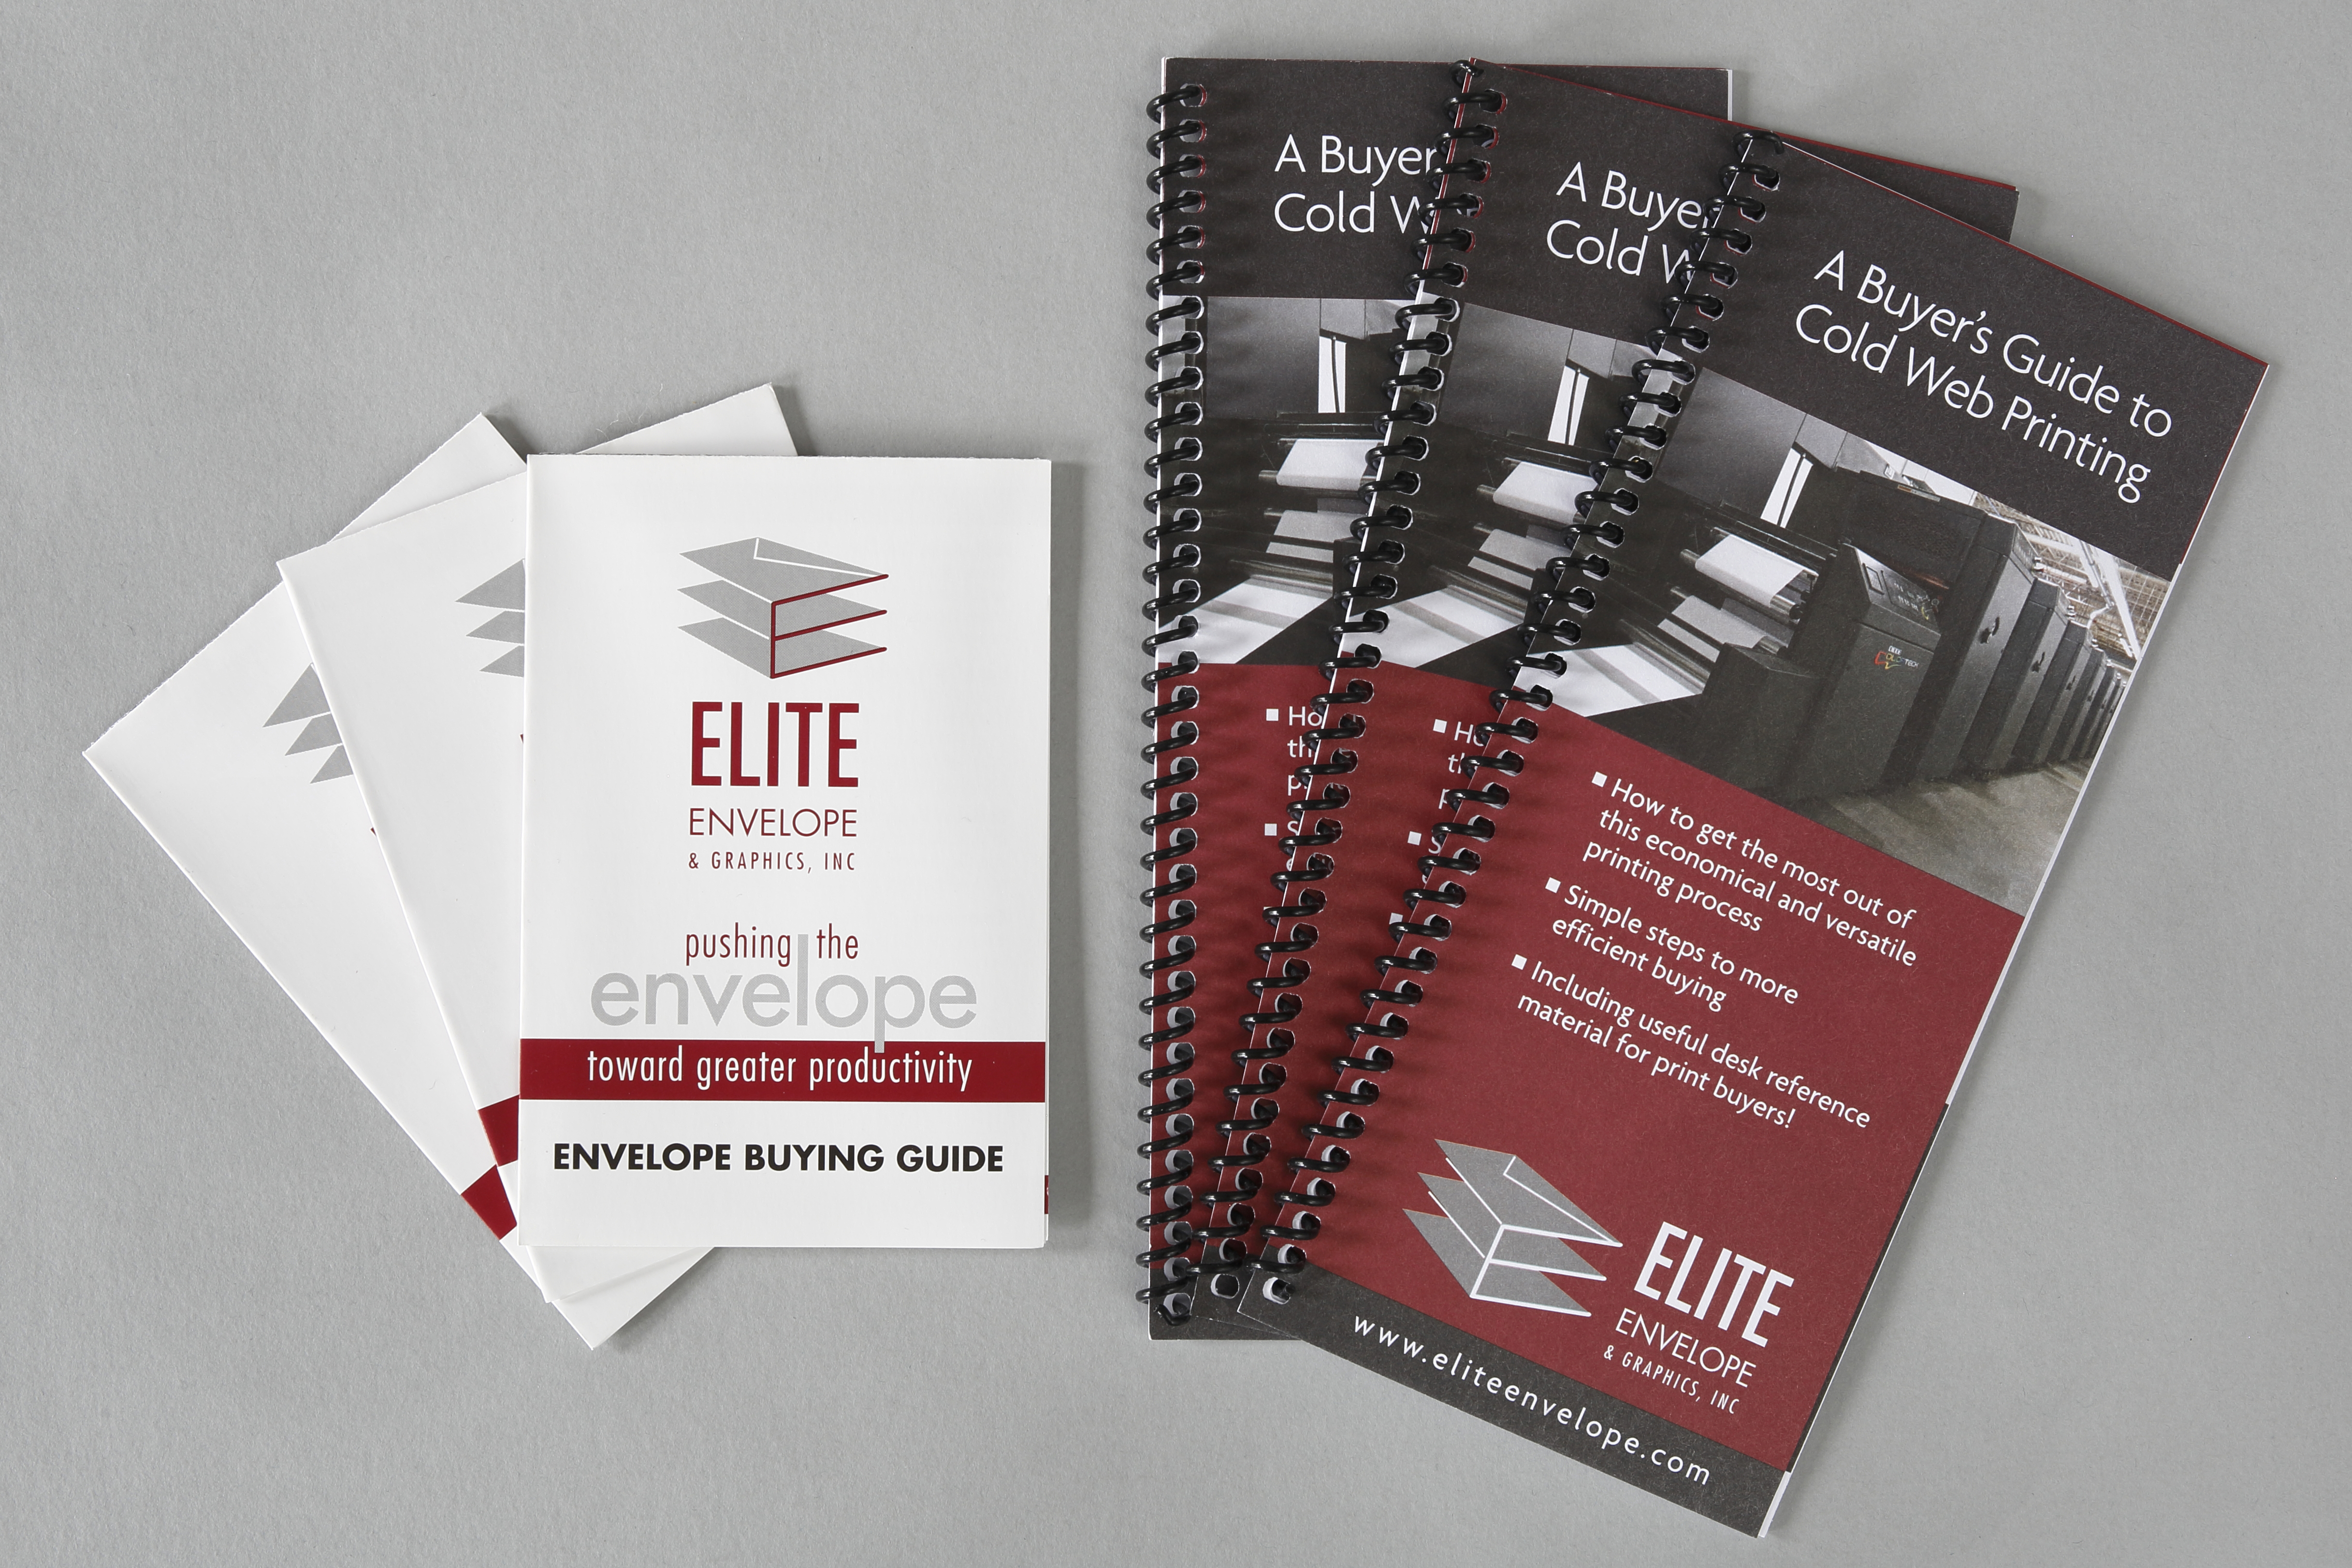 Envelope Buying Questions? Elite Envelope Has Answers